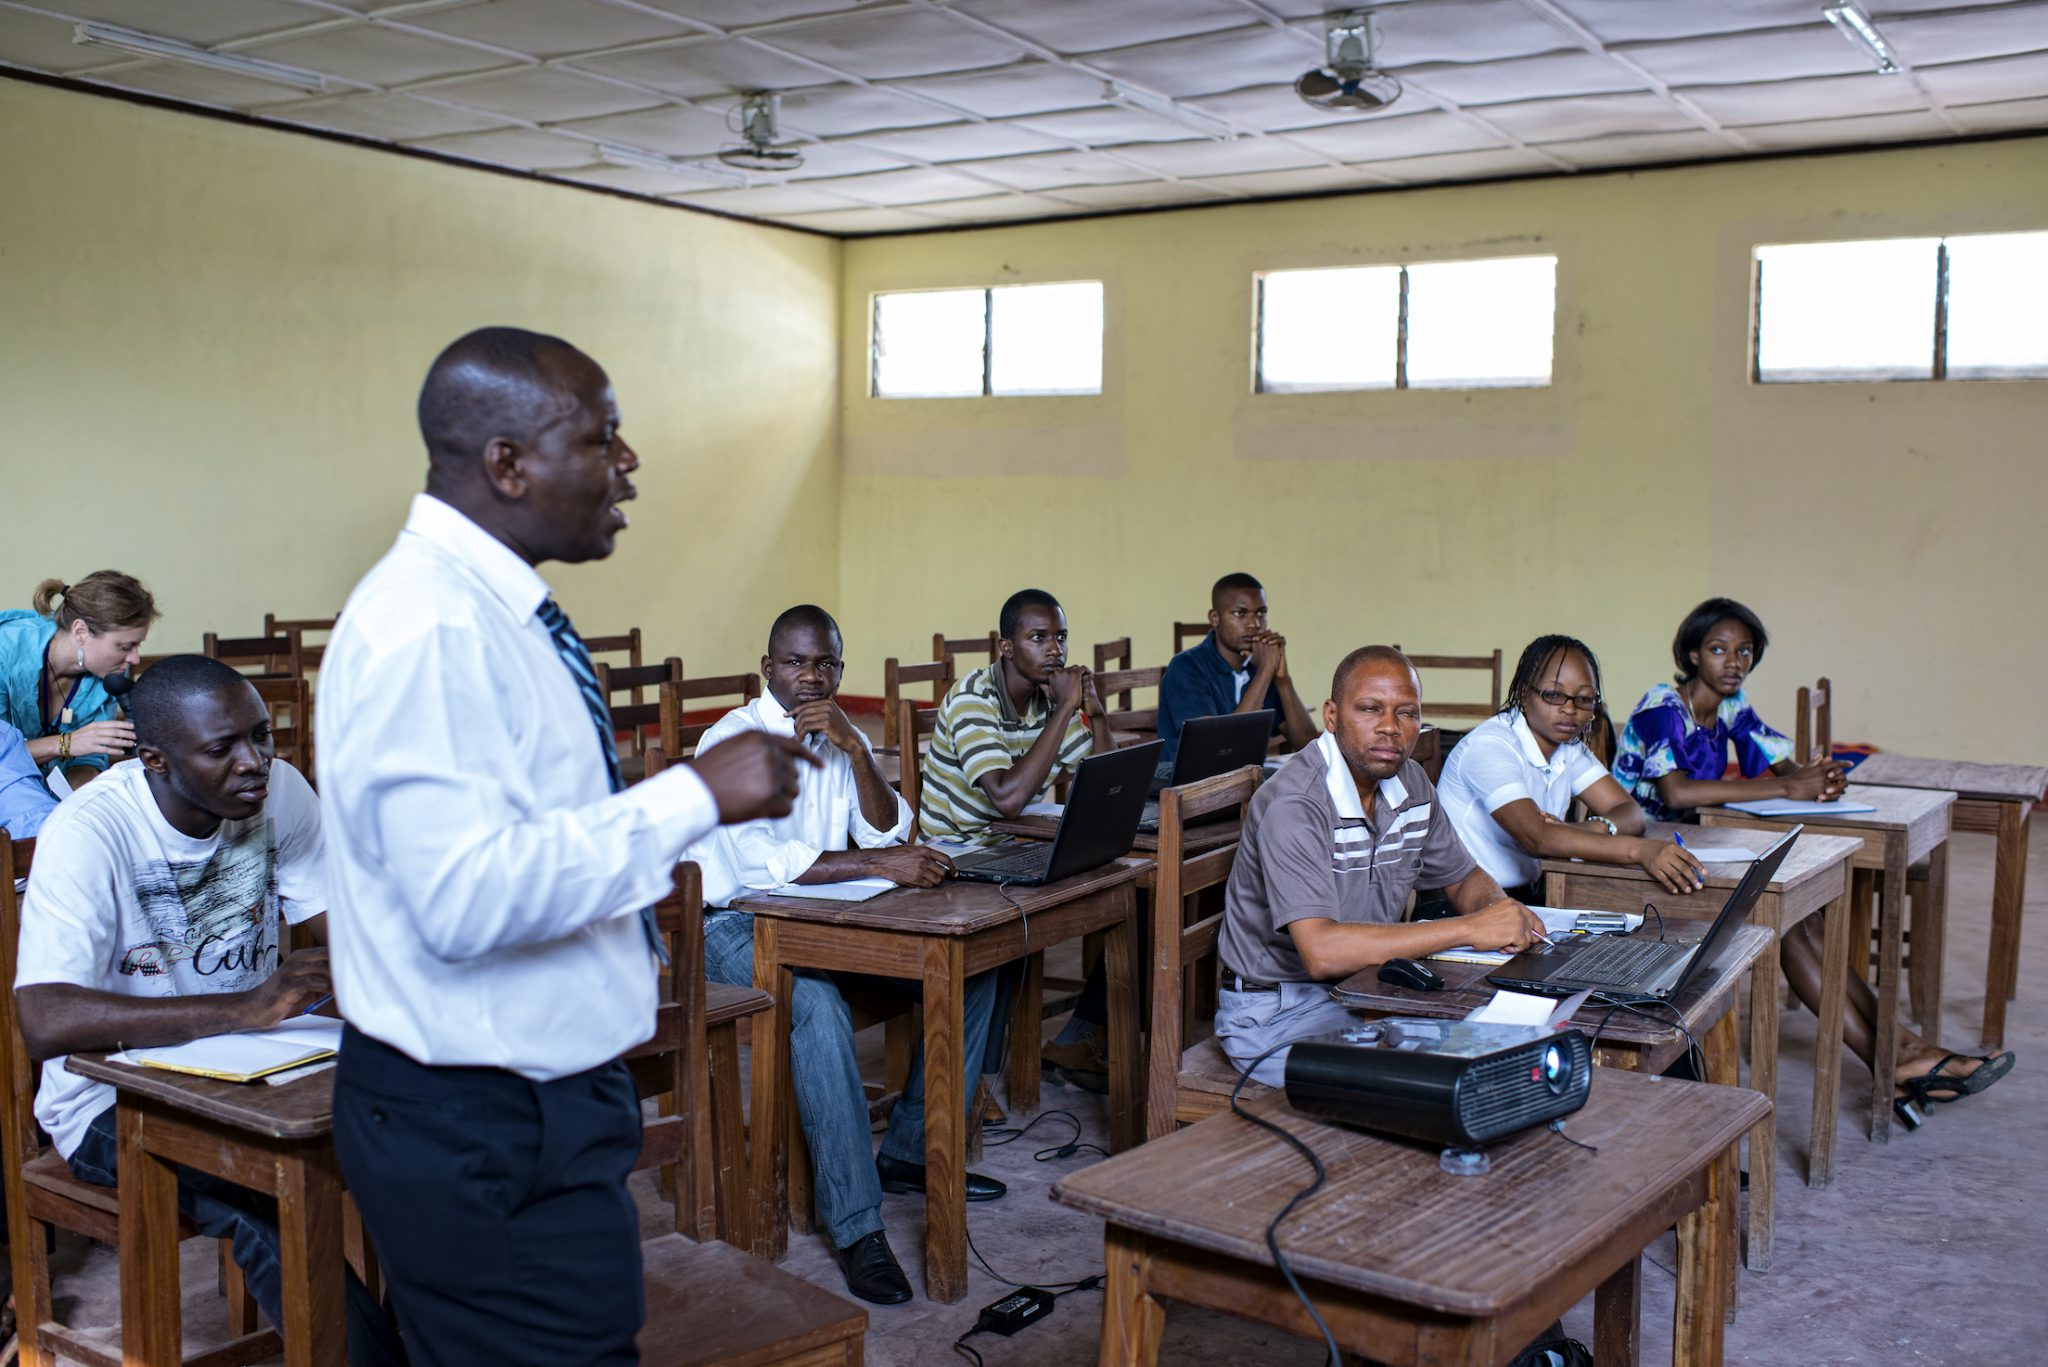 MSc students at the University of Science of Kisangani, Democratic Republic of Congo